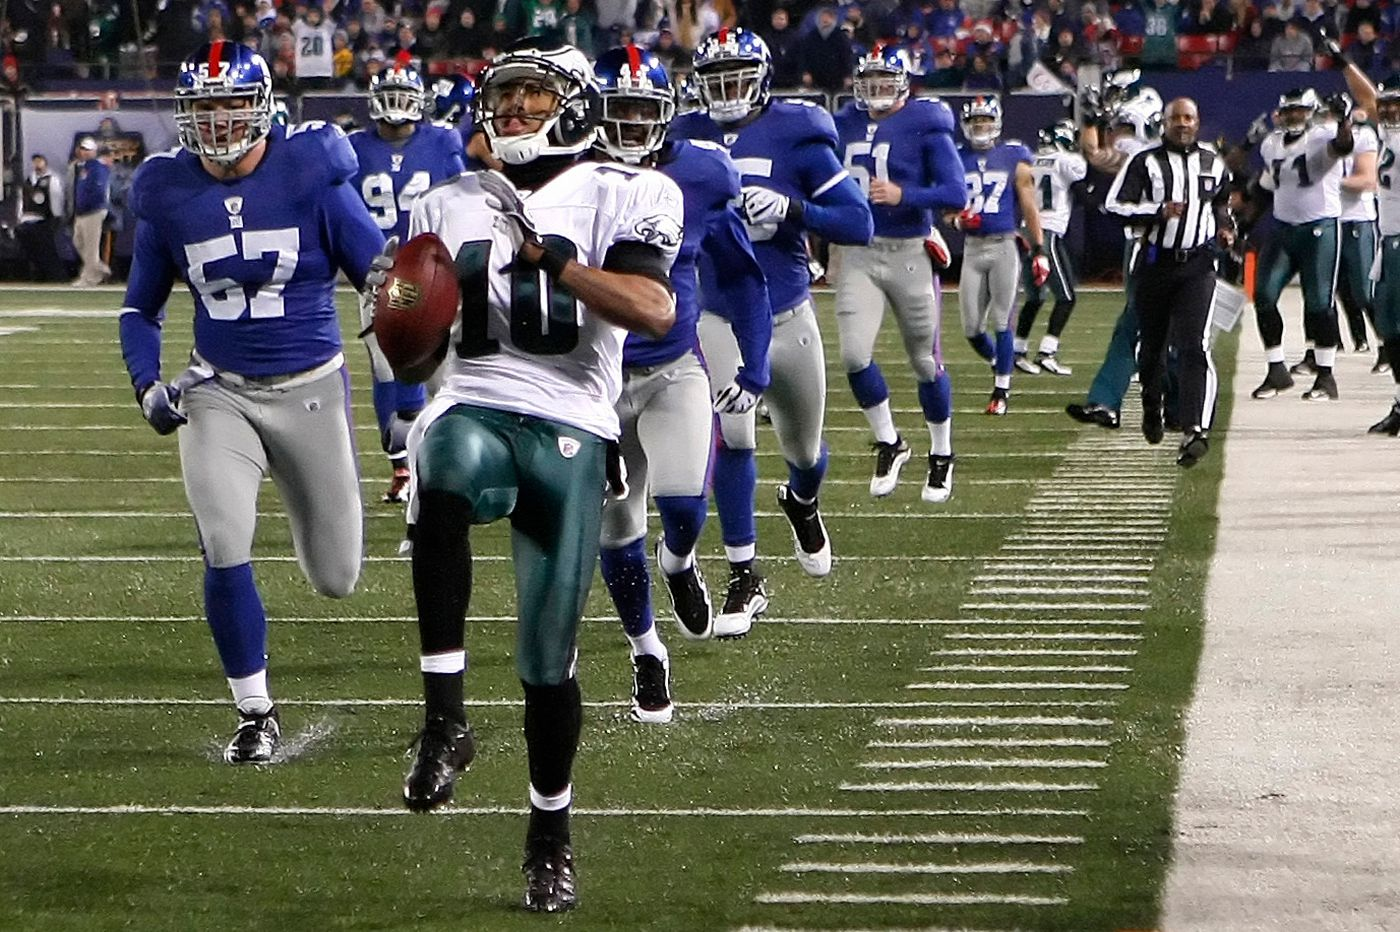 Does DeSean Jackson have another miracle left in him? The Eagles plan to find out, use him as a returner in certain situations.